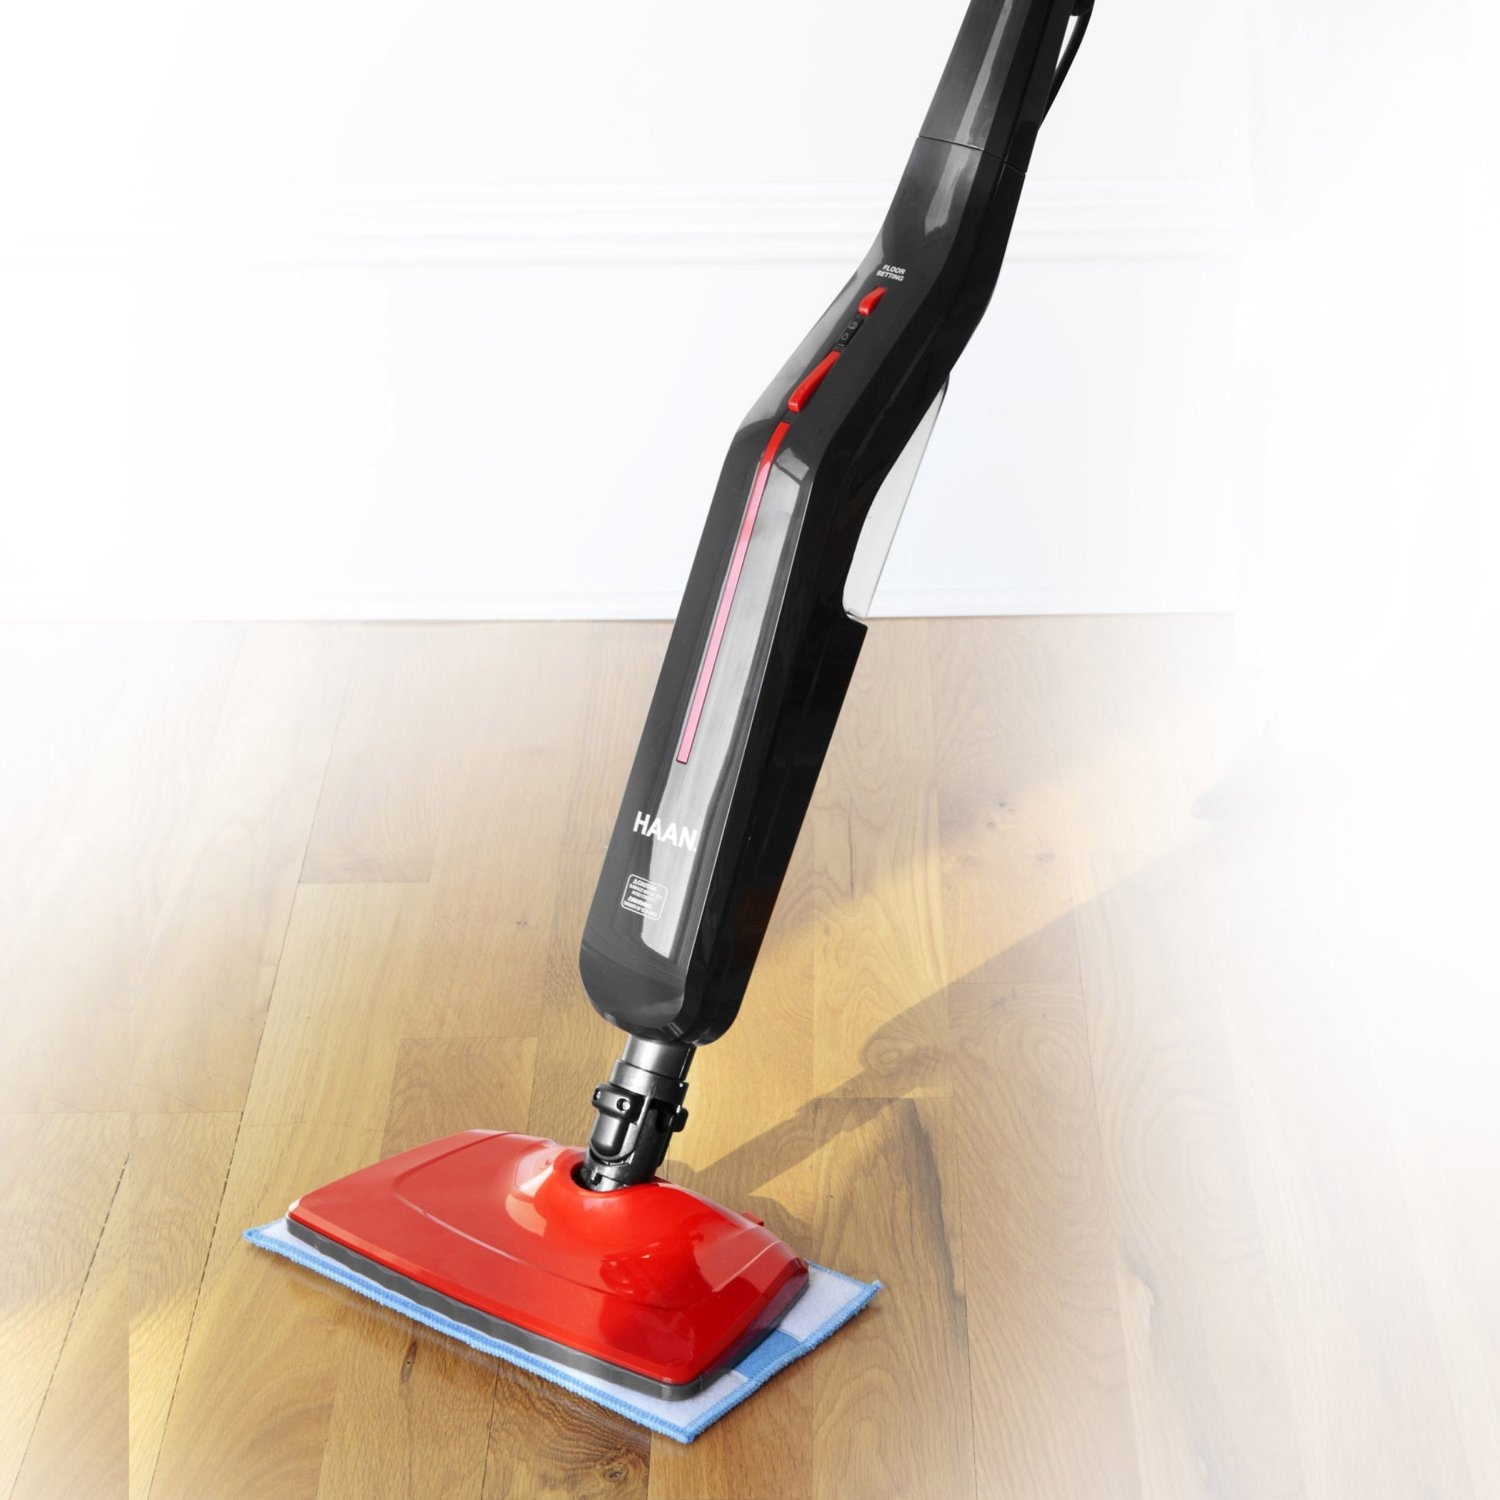 Best Steam Mop For Laminate Wood Floor